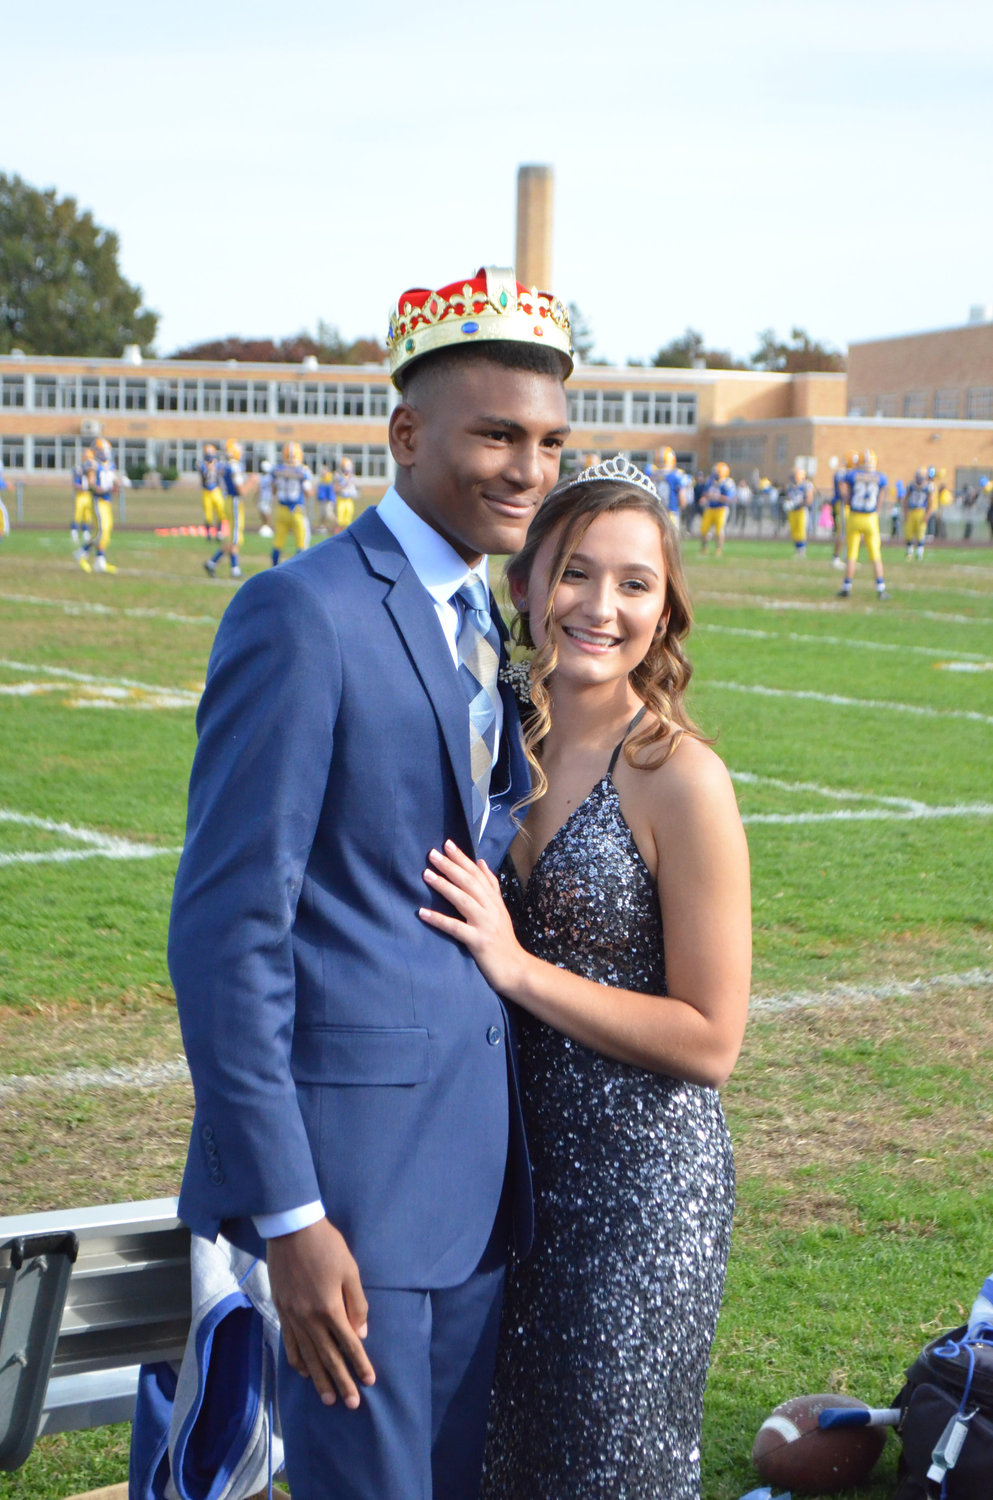 Chris Wade and Jenna Balsamo were crowned Homecoming king and queen.